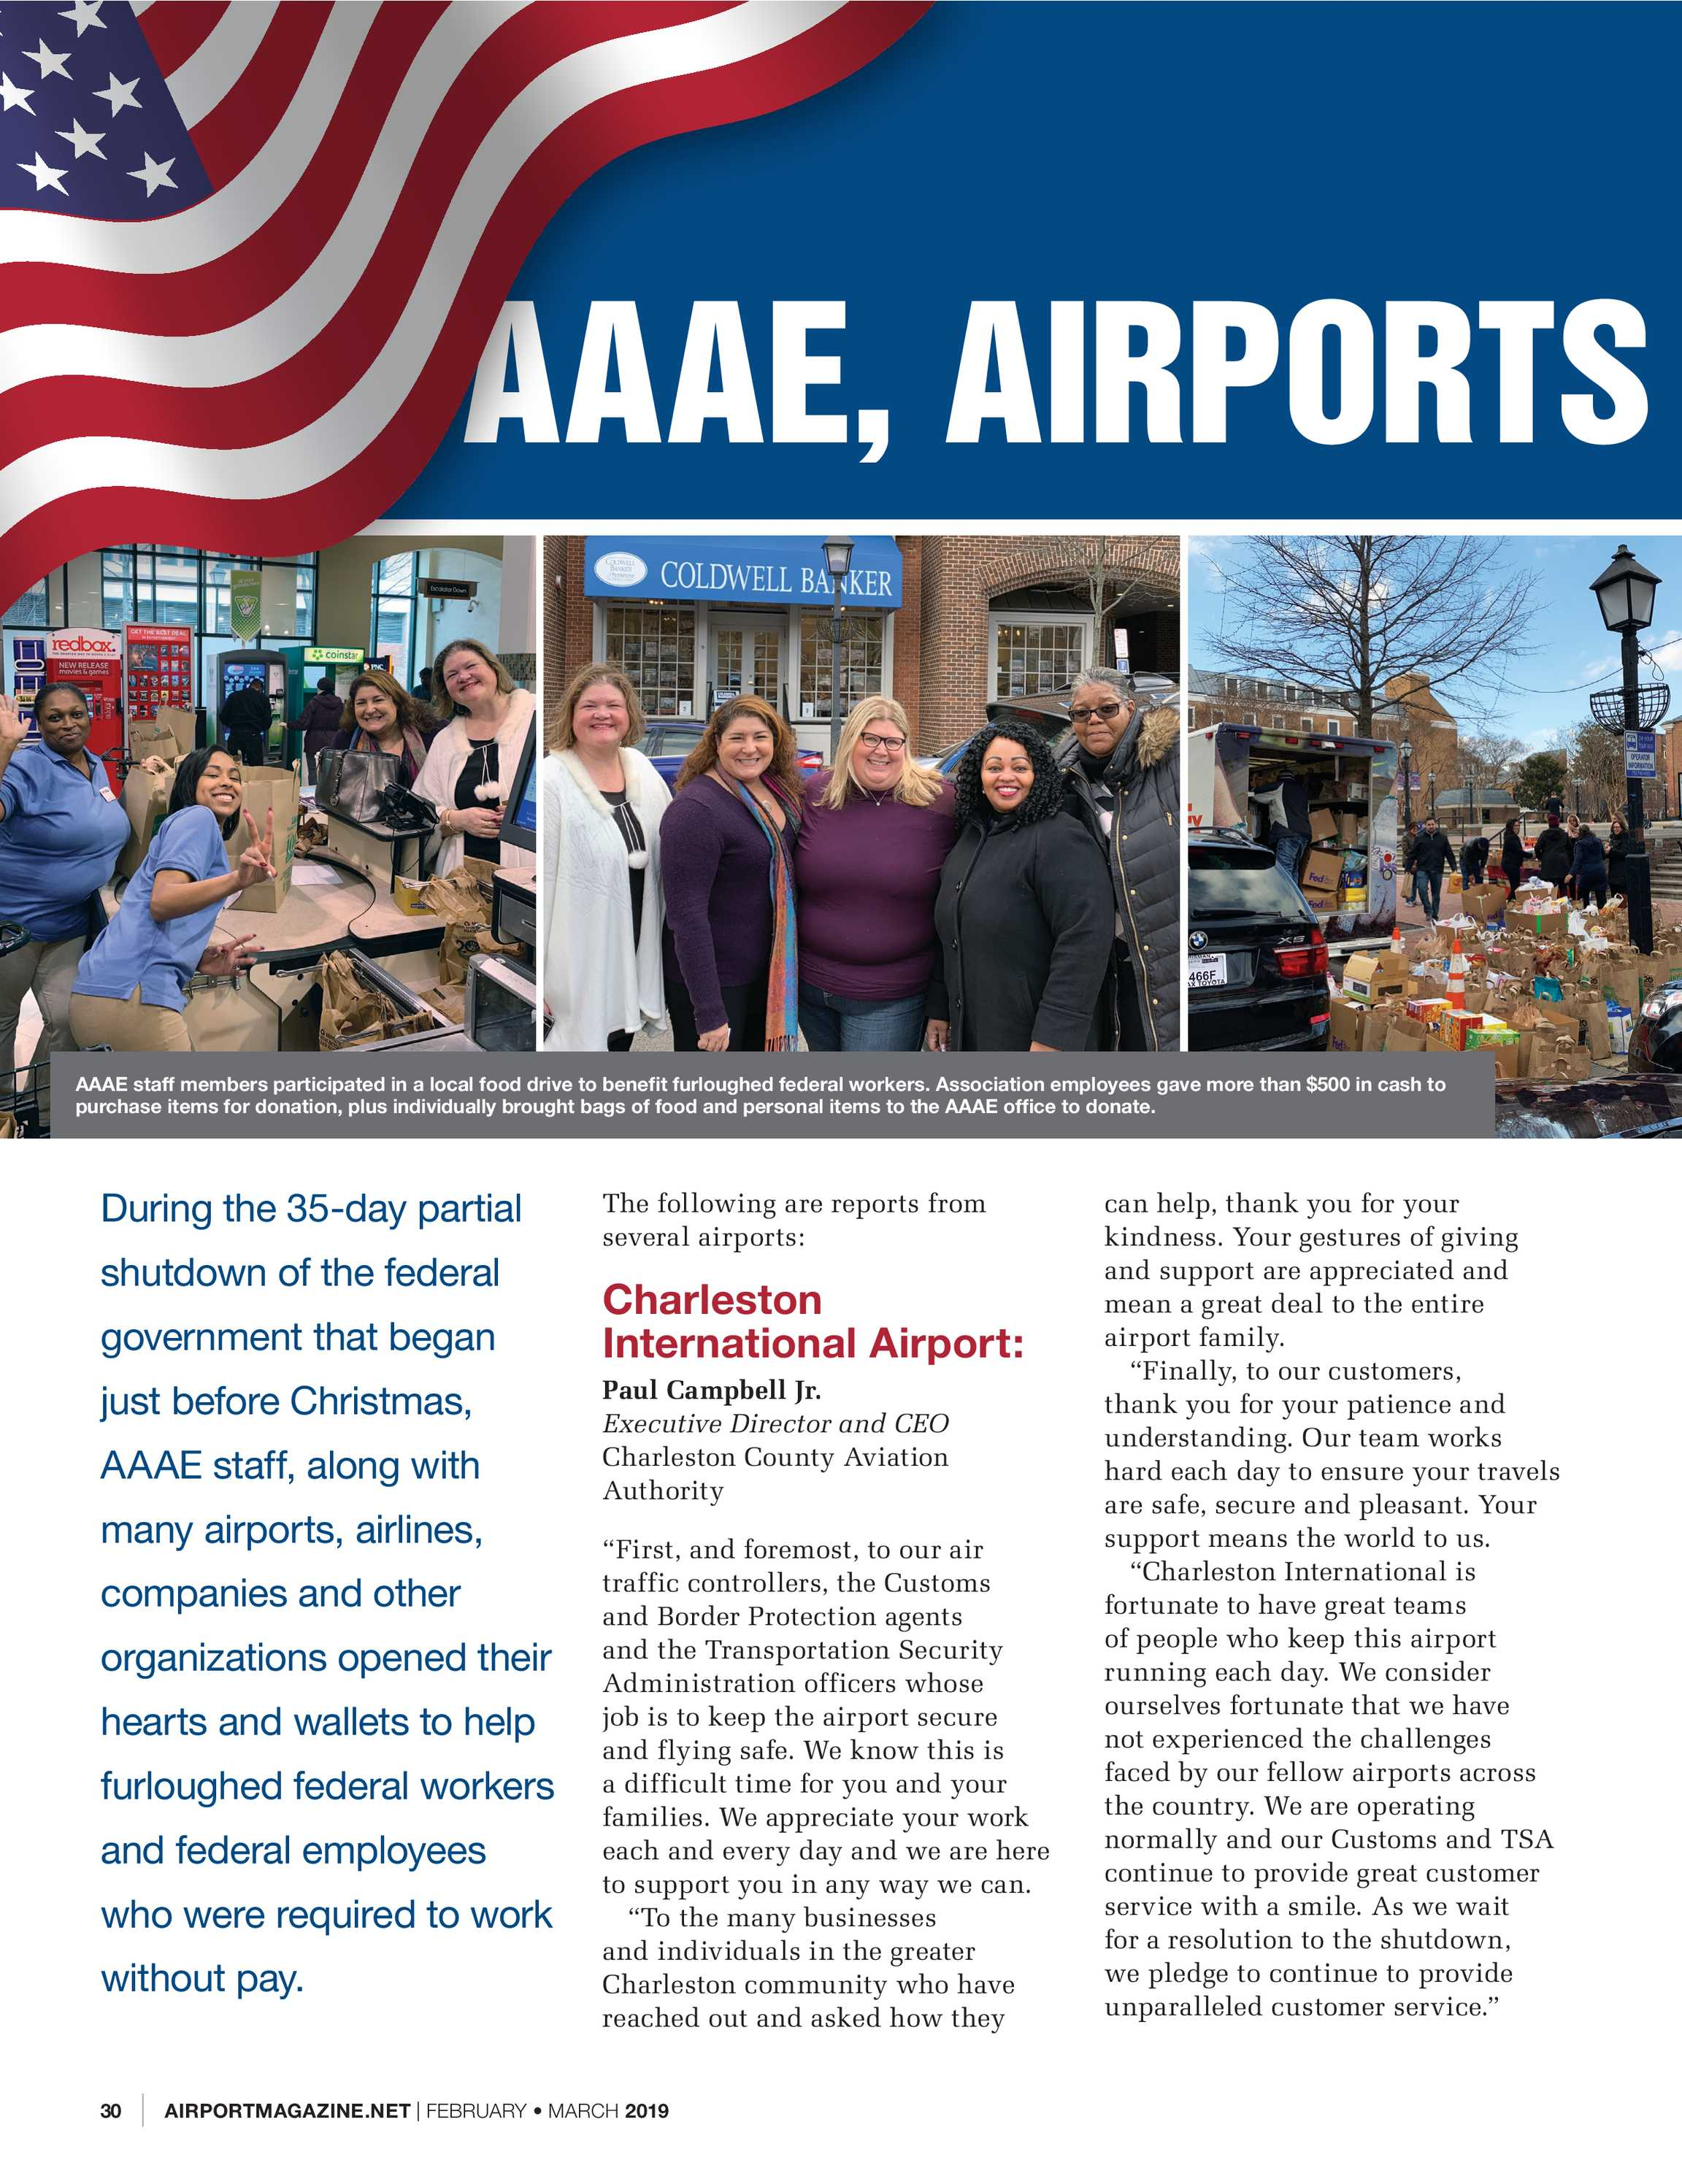 Airport Magazine - February/March 2019 - page 30